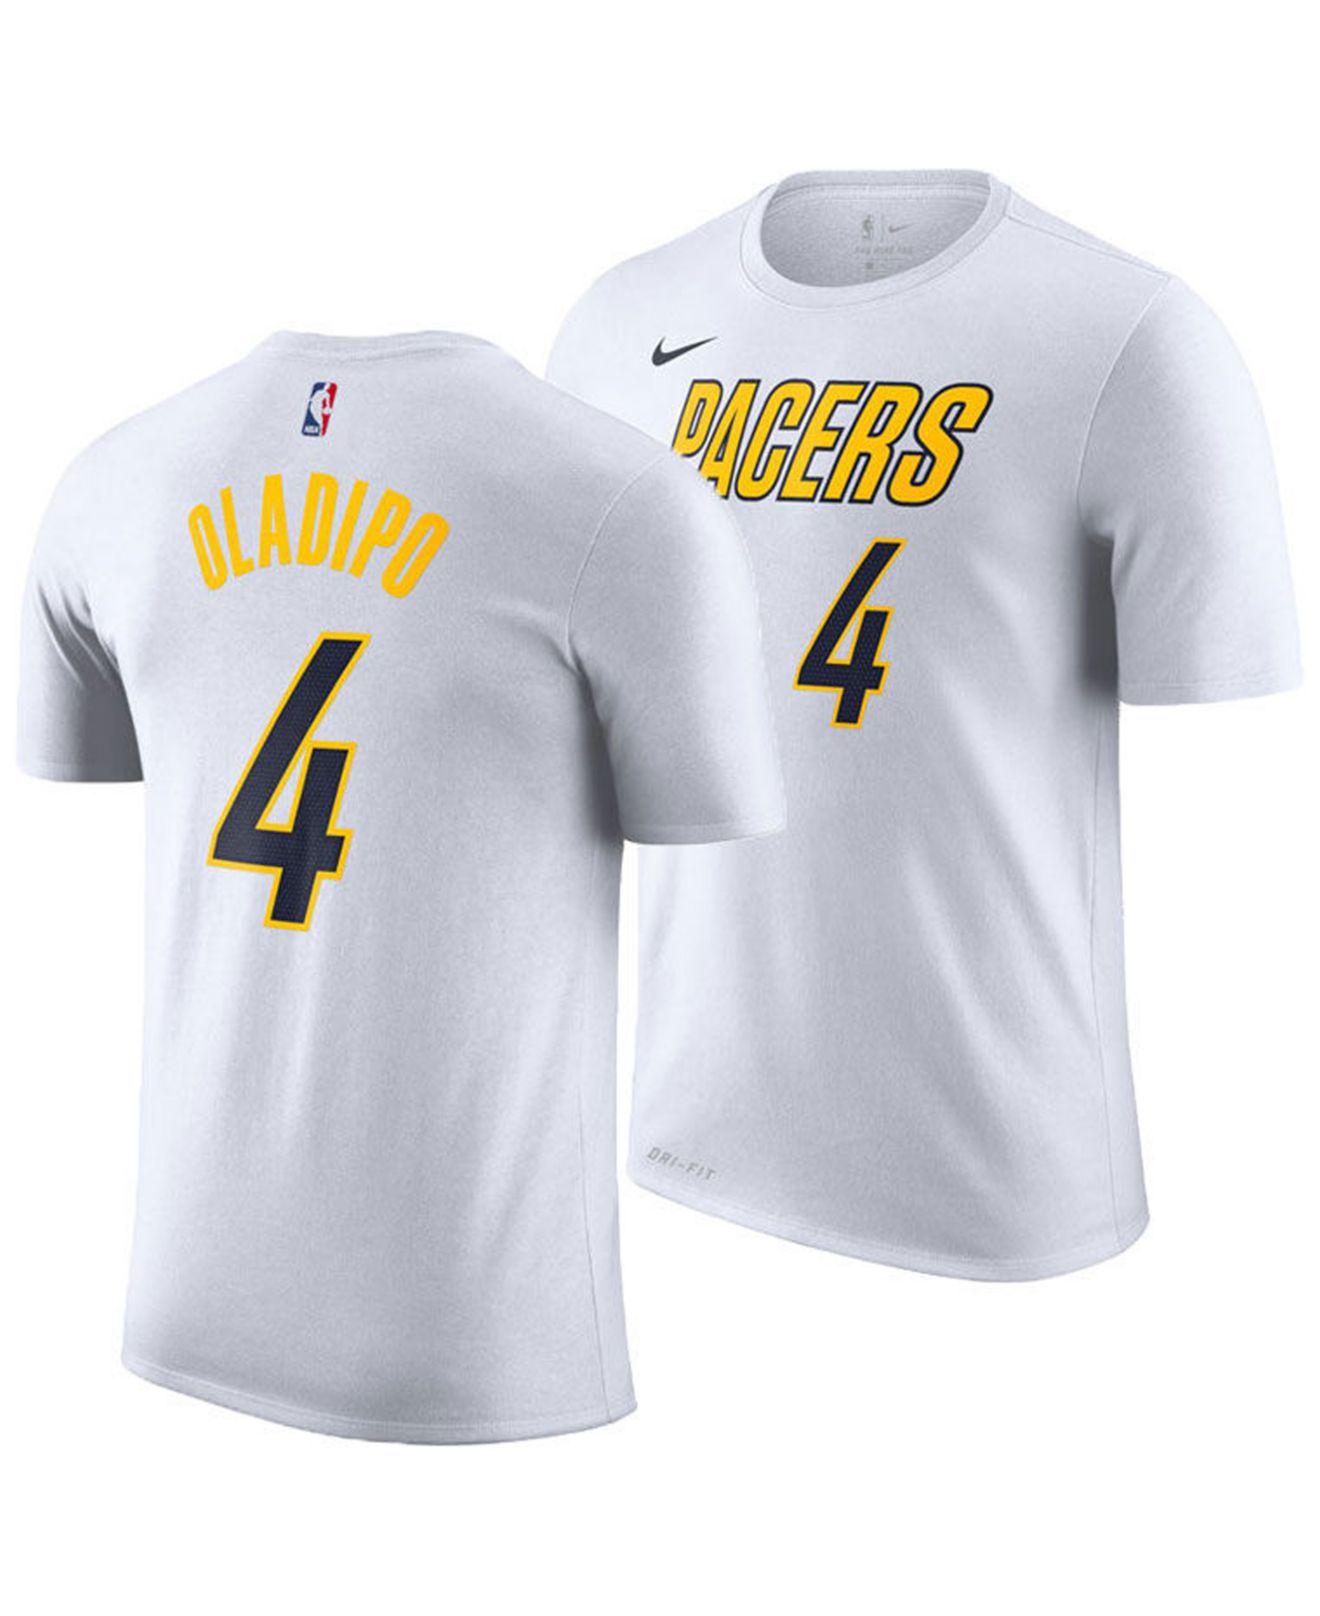 e394a3b56 Adidas Indiana Pacers Practice Performance Long Sleeve T Shirt Black ...